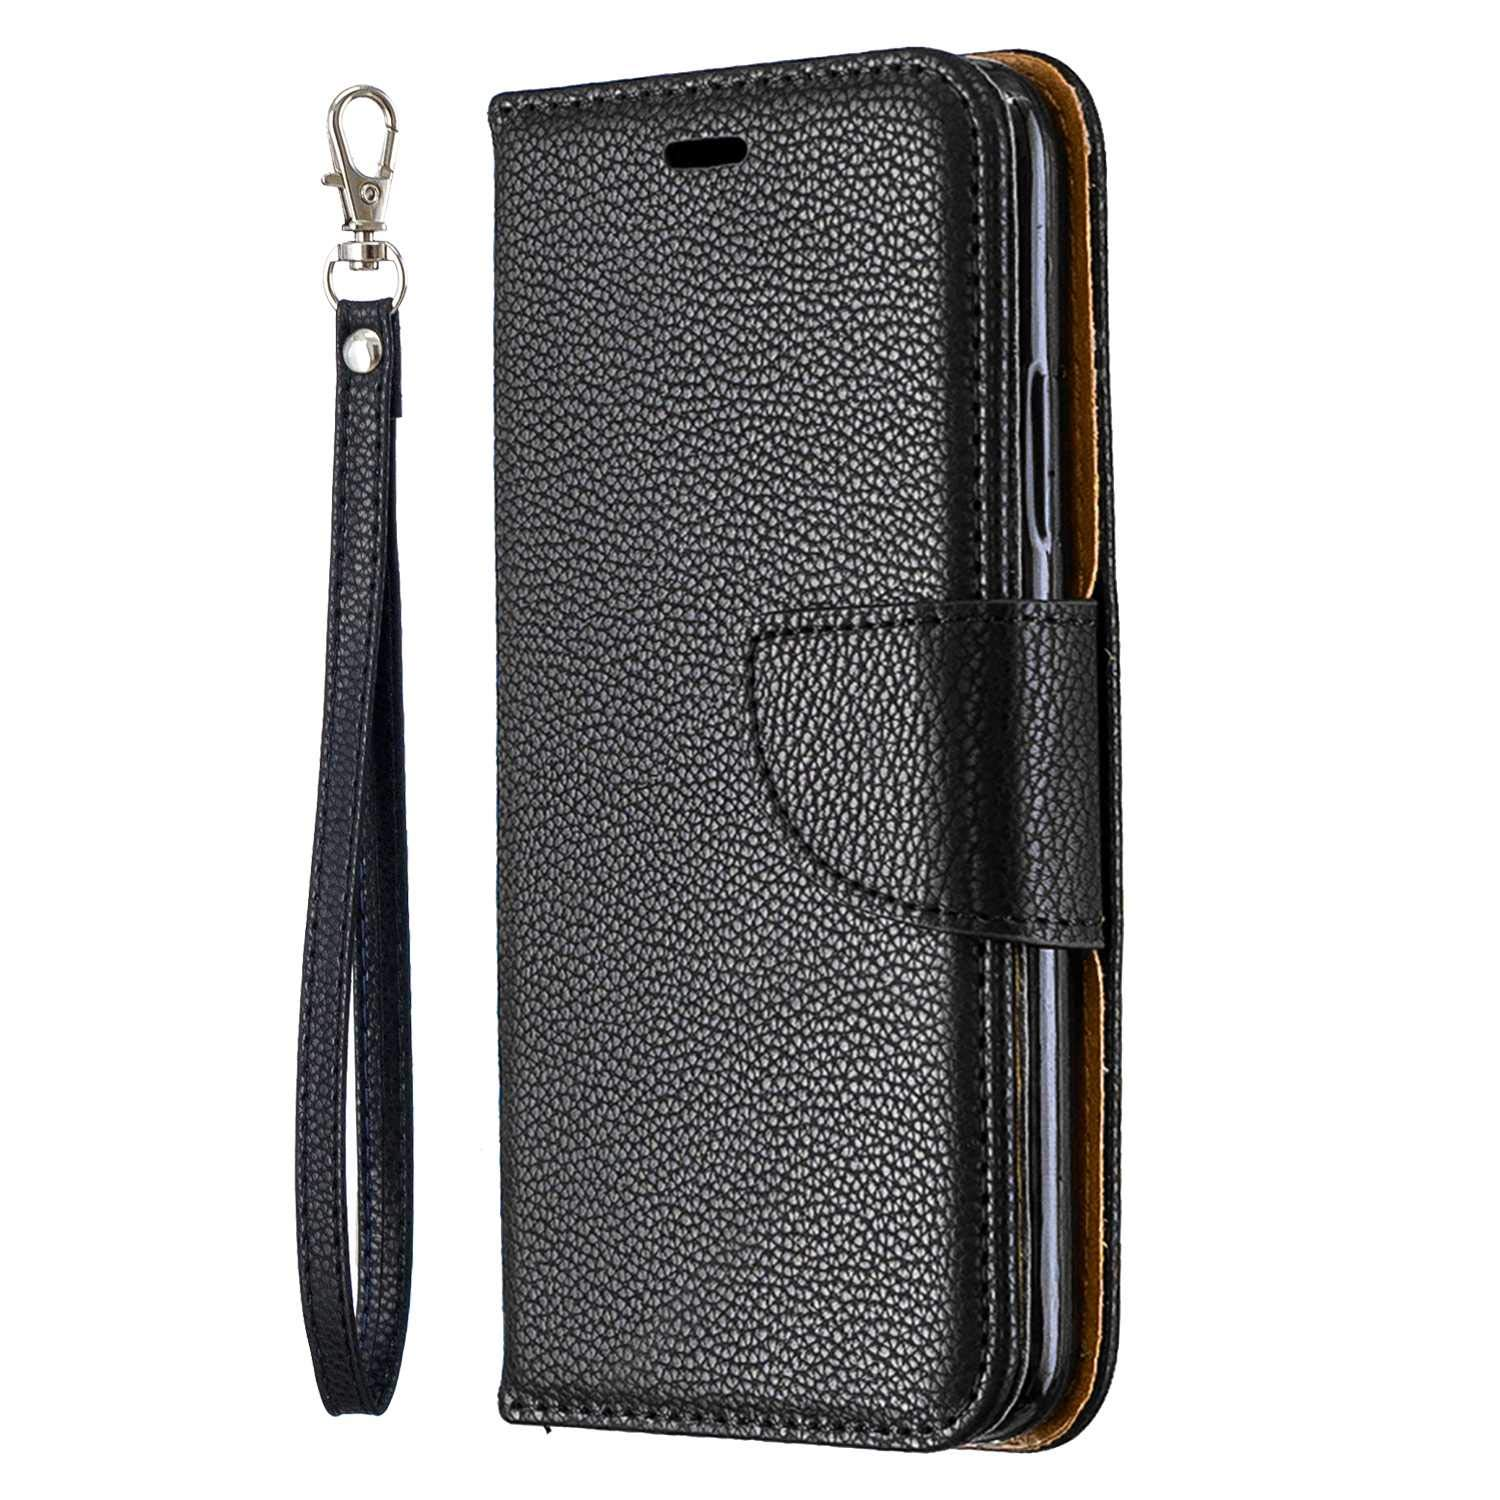 iPhone 7 // iPhone 8 Case Flip Case Full Body Protective Case Blue CUSKING Magnetic Wallet Case for Apple iPhone 7 // iPhone 8 with Card Slot and Hand Strap